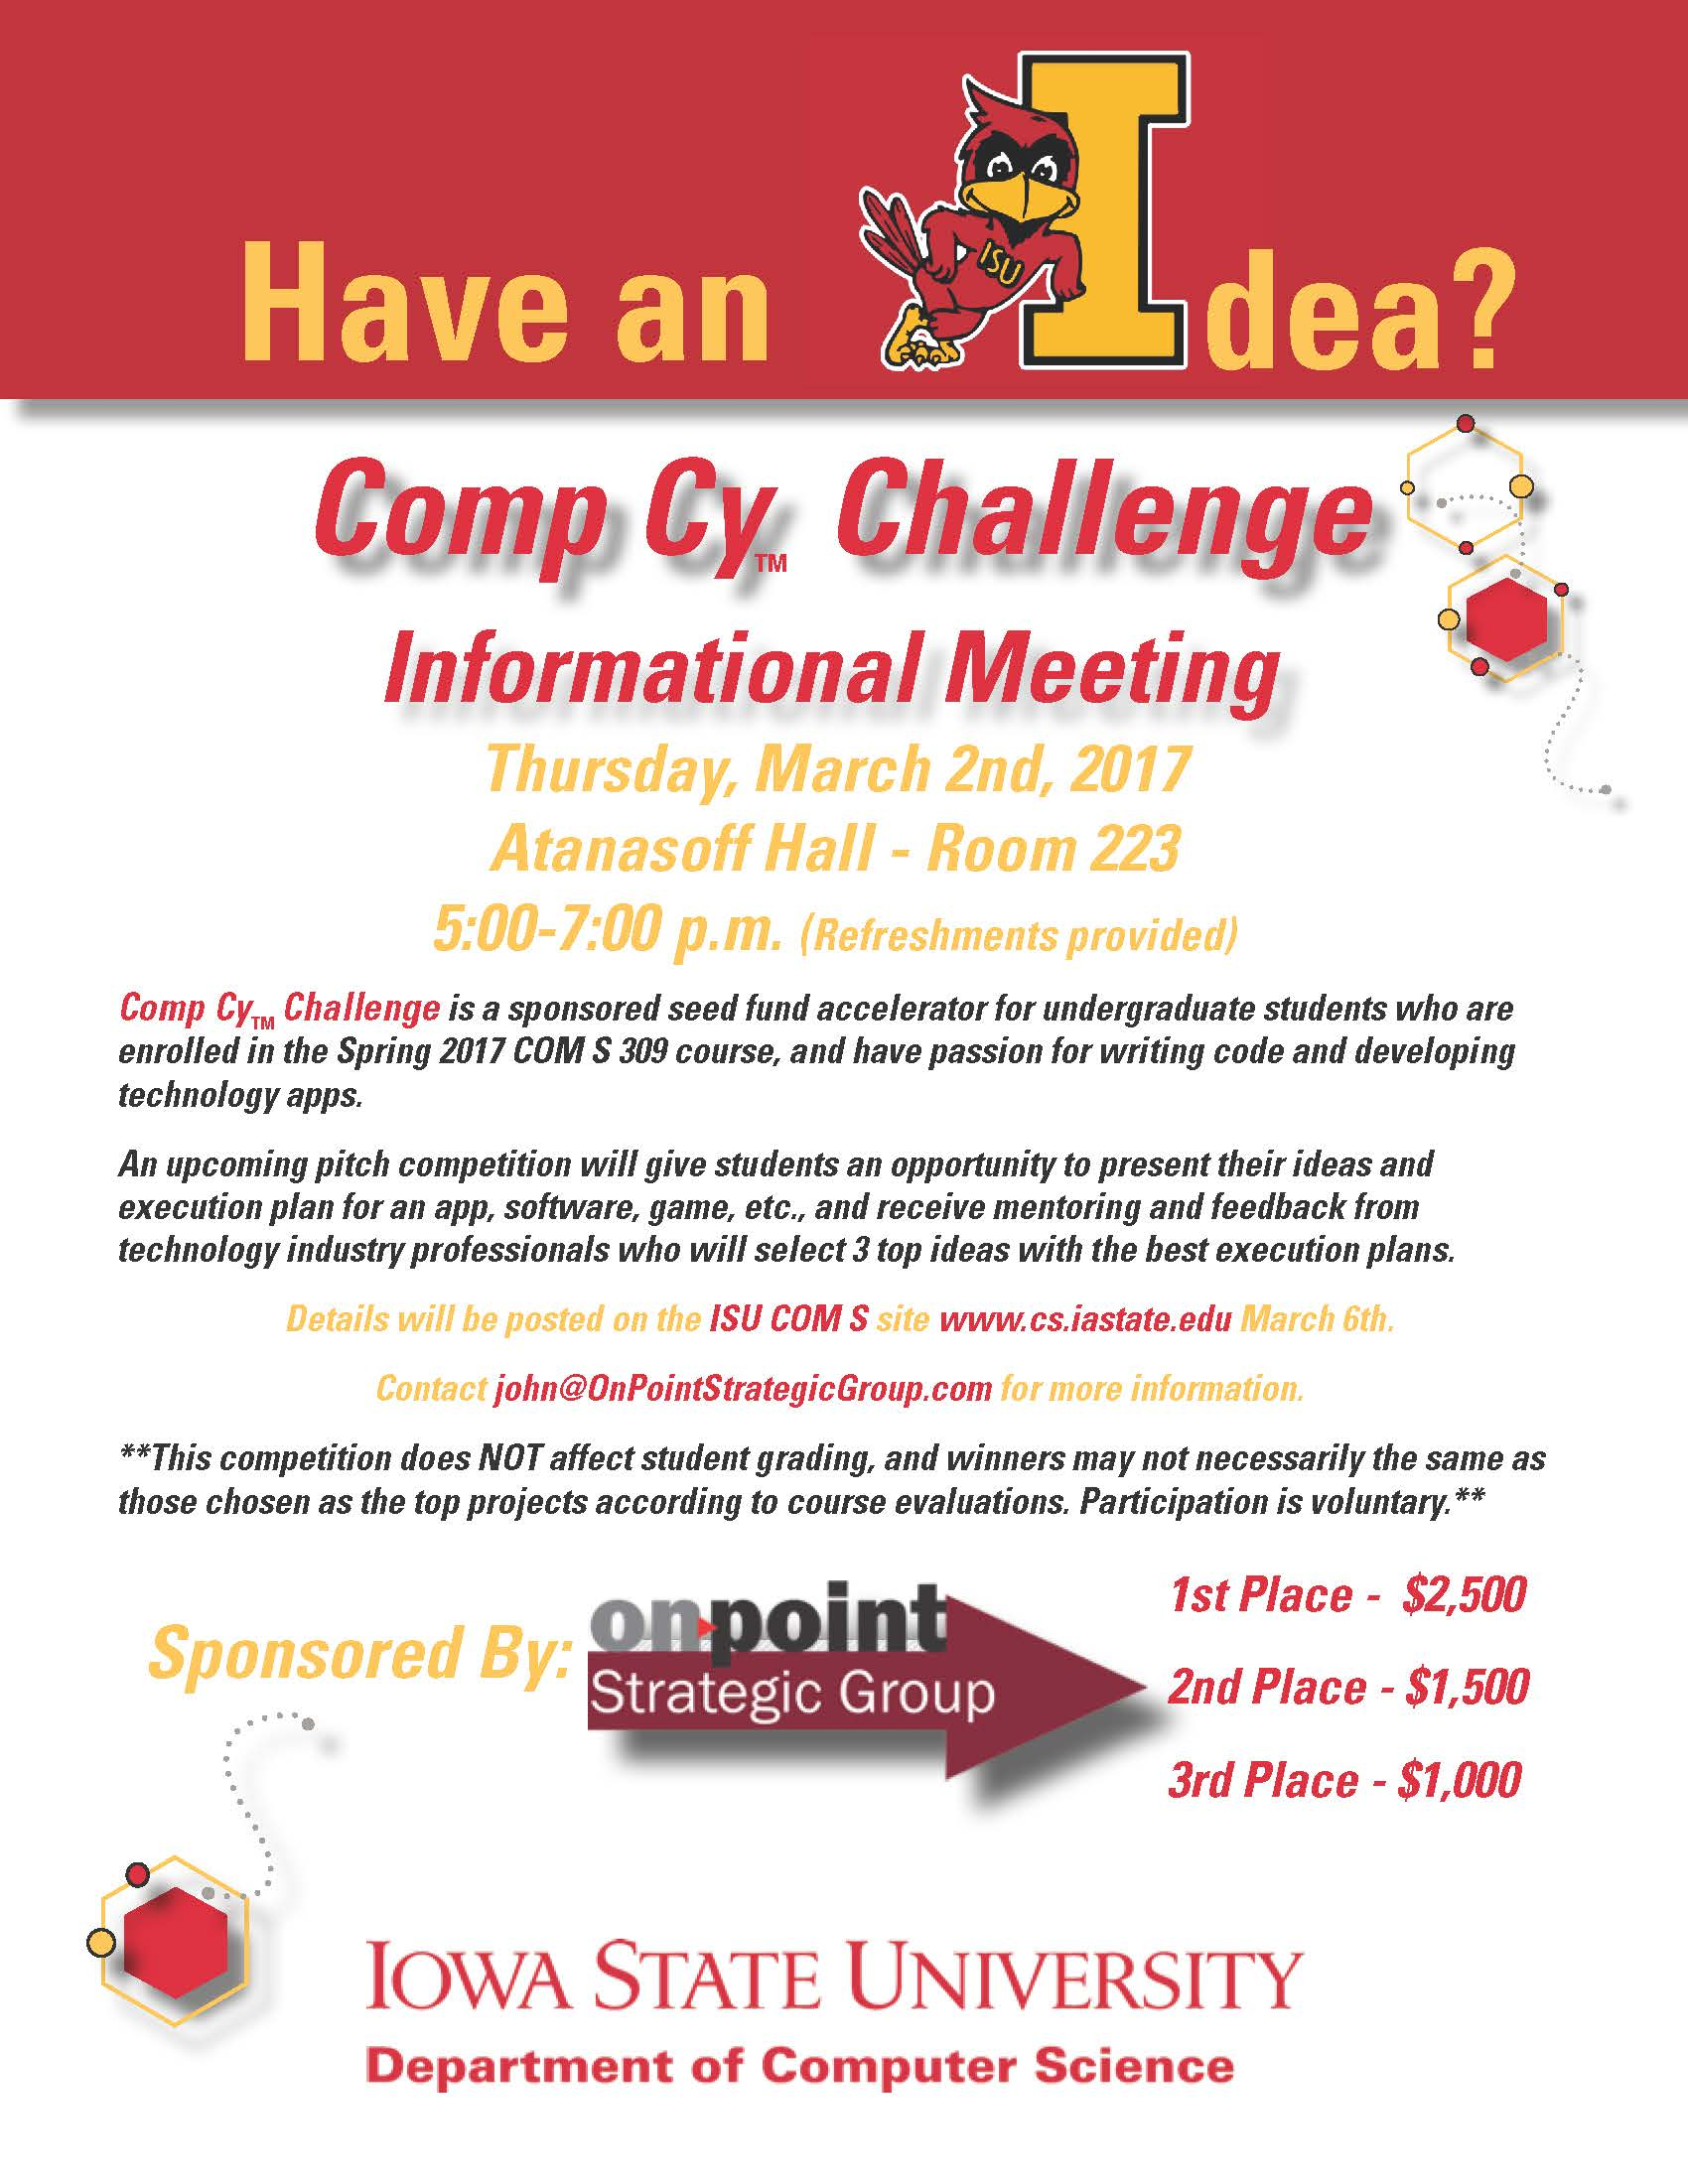 Comp Cy Challenge Informational Meeting Thursday, March 2nd, 2017